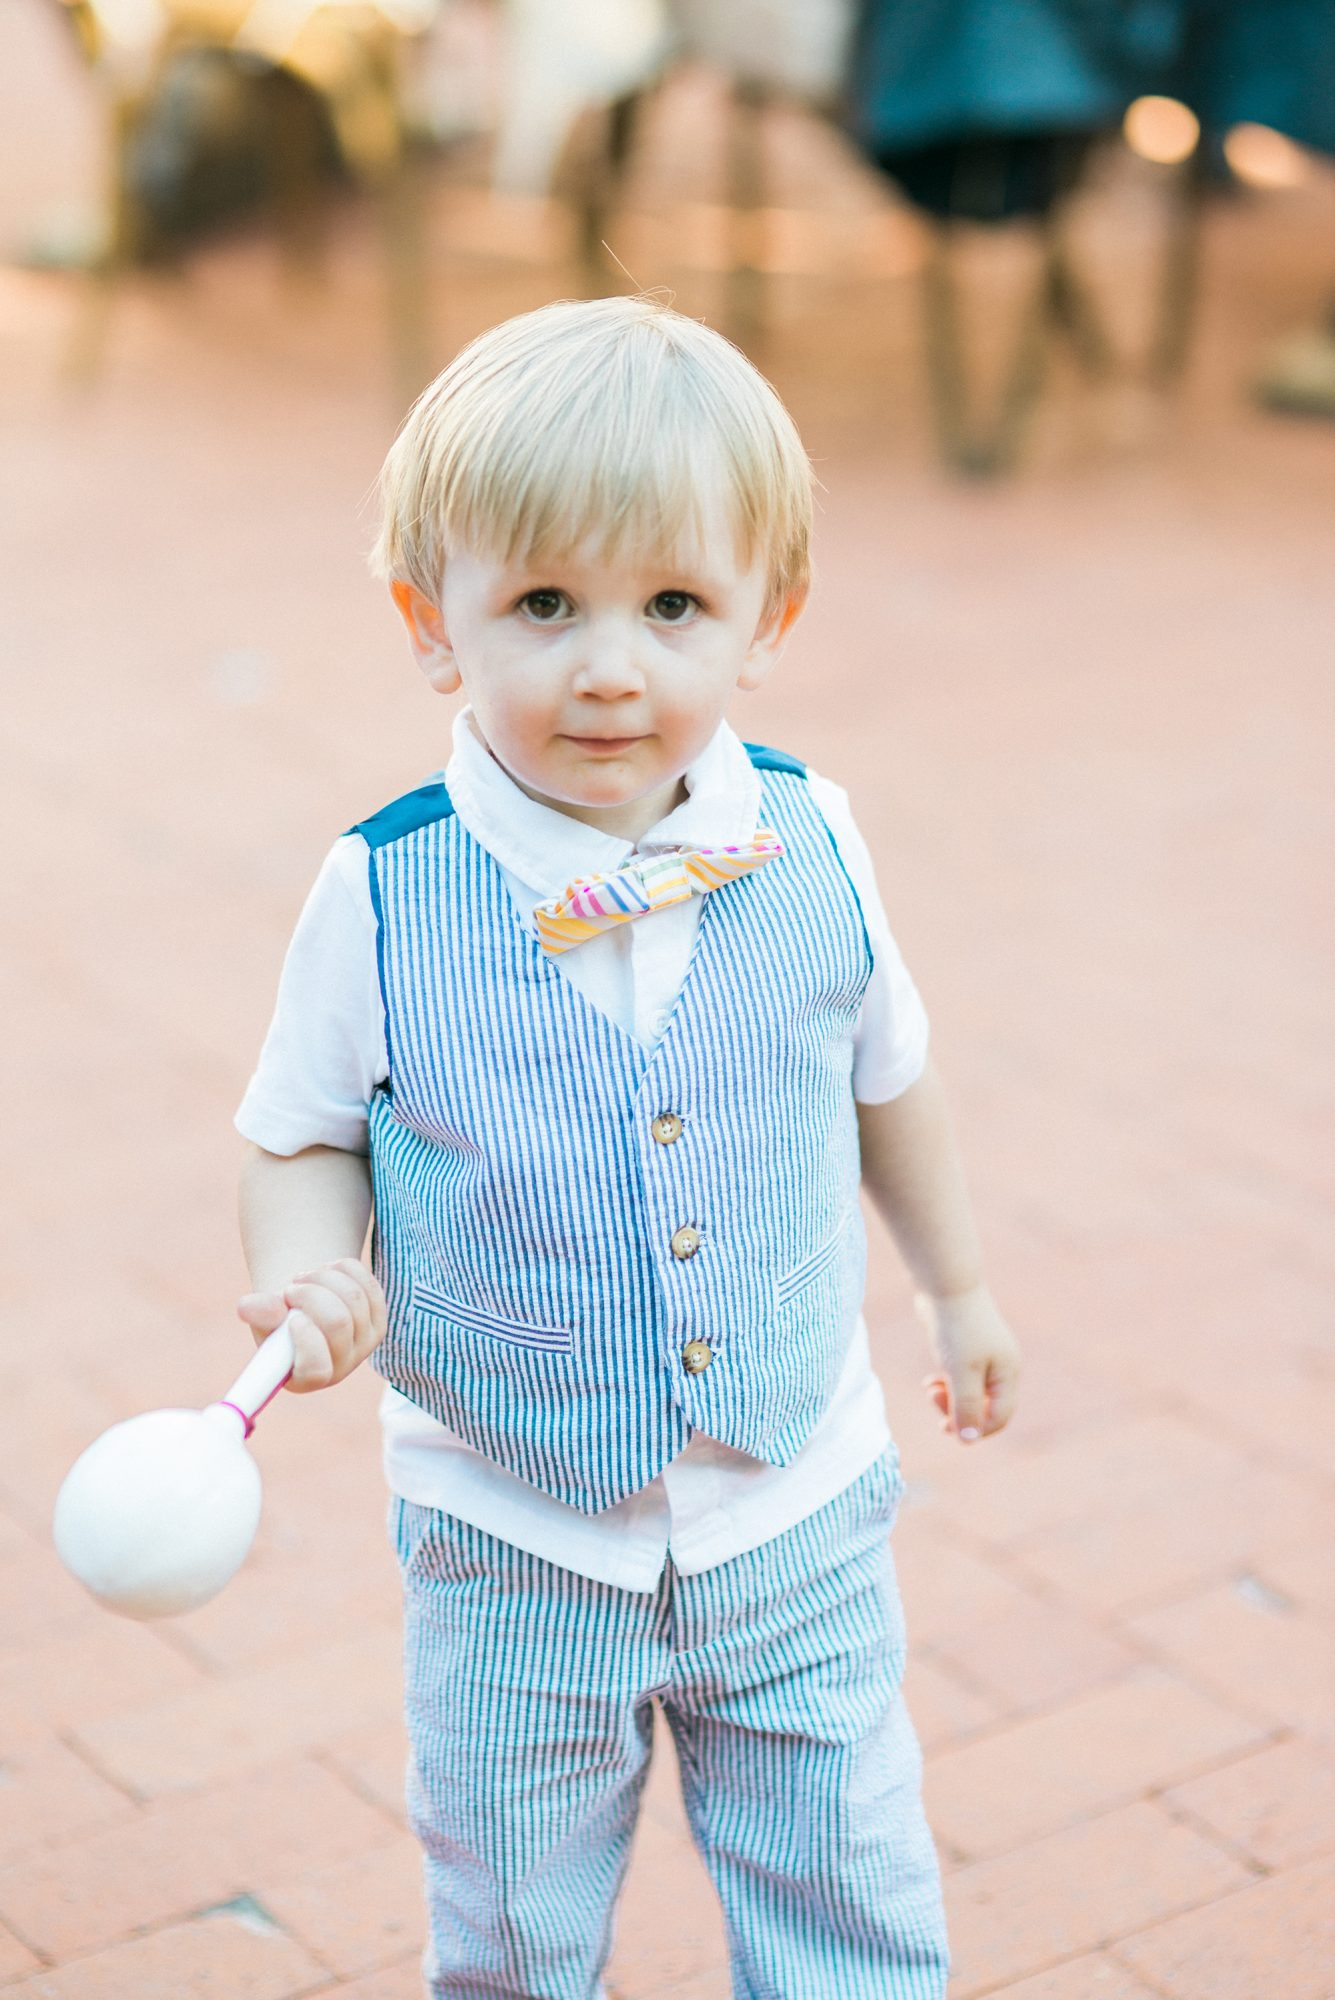 ring bearer wearing striped vest and pants